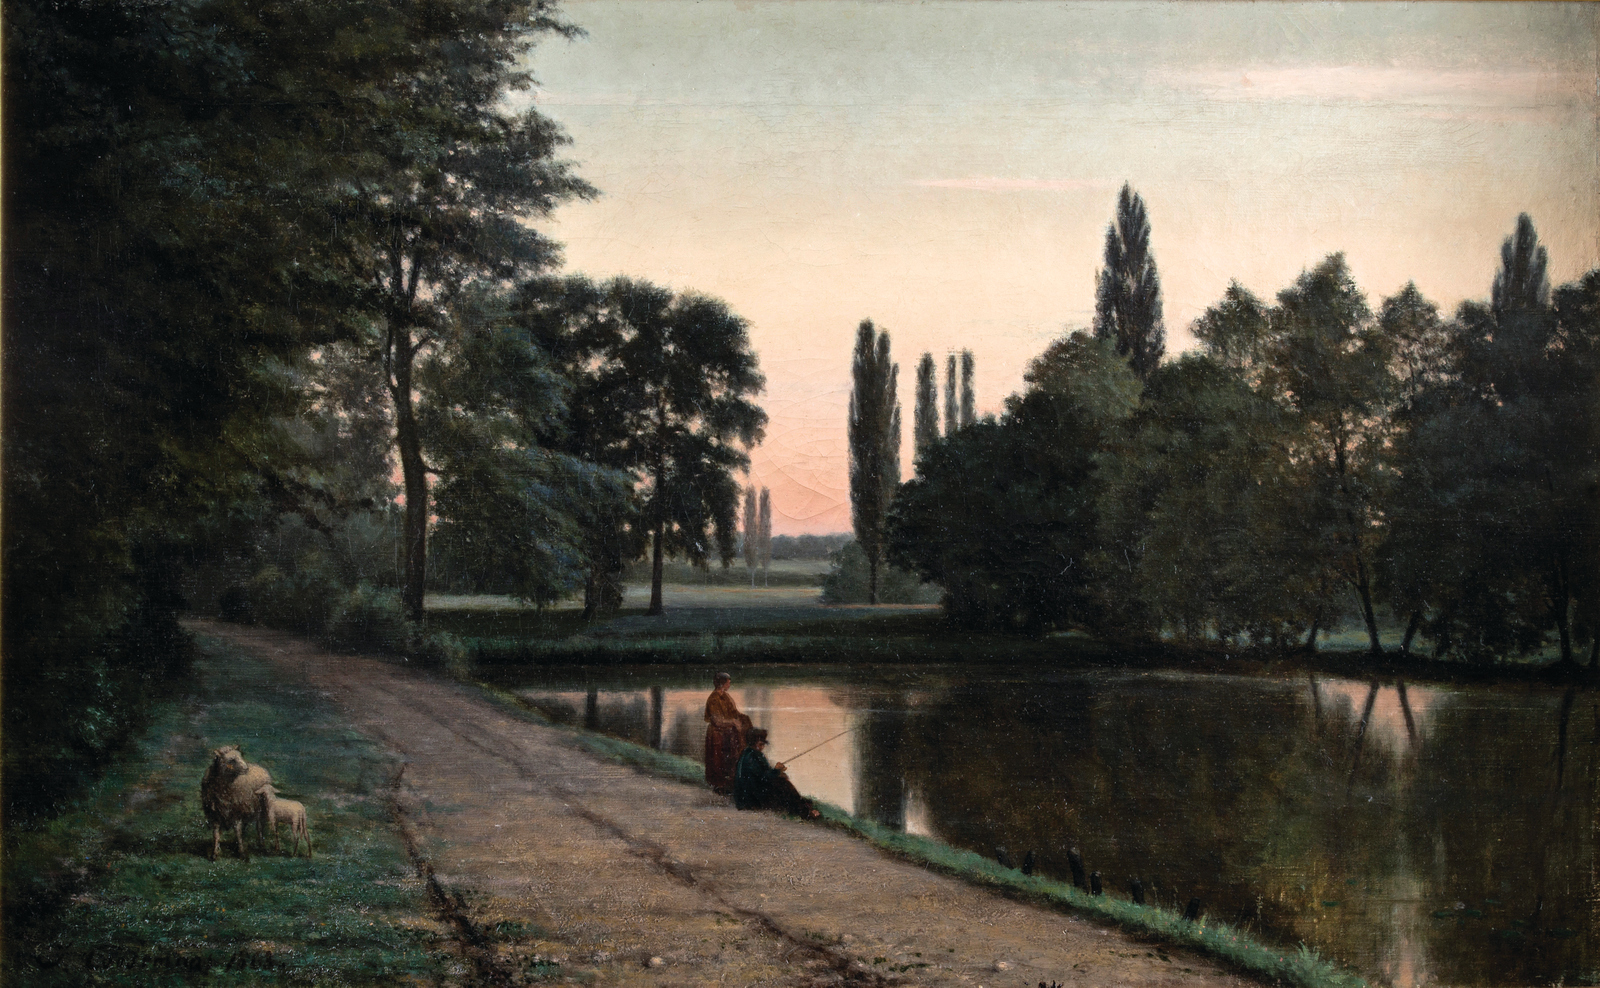 Joseph-Théodore Coosemans    (1828 Brussels-Schaerbeek 1904),    Pond at the Castle of Robiano-Tervuren   , 1863. Oil on canvas, 53.3 x 86.8 cm., Hearn Family Trust. Courtesy of the McMullen Museum of Art, Boston College